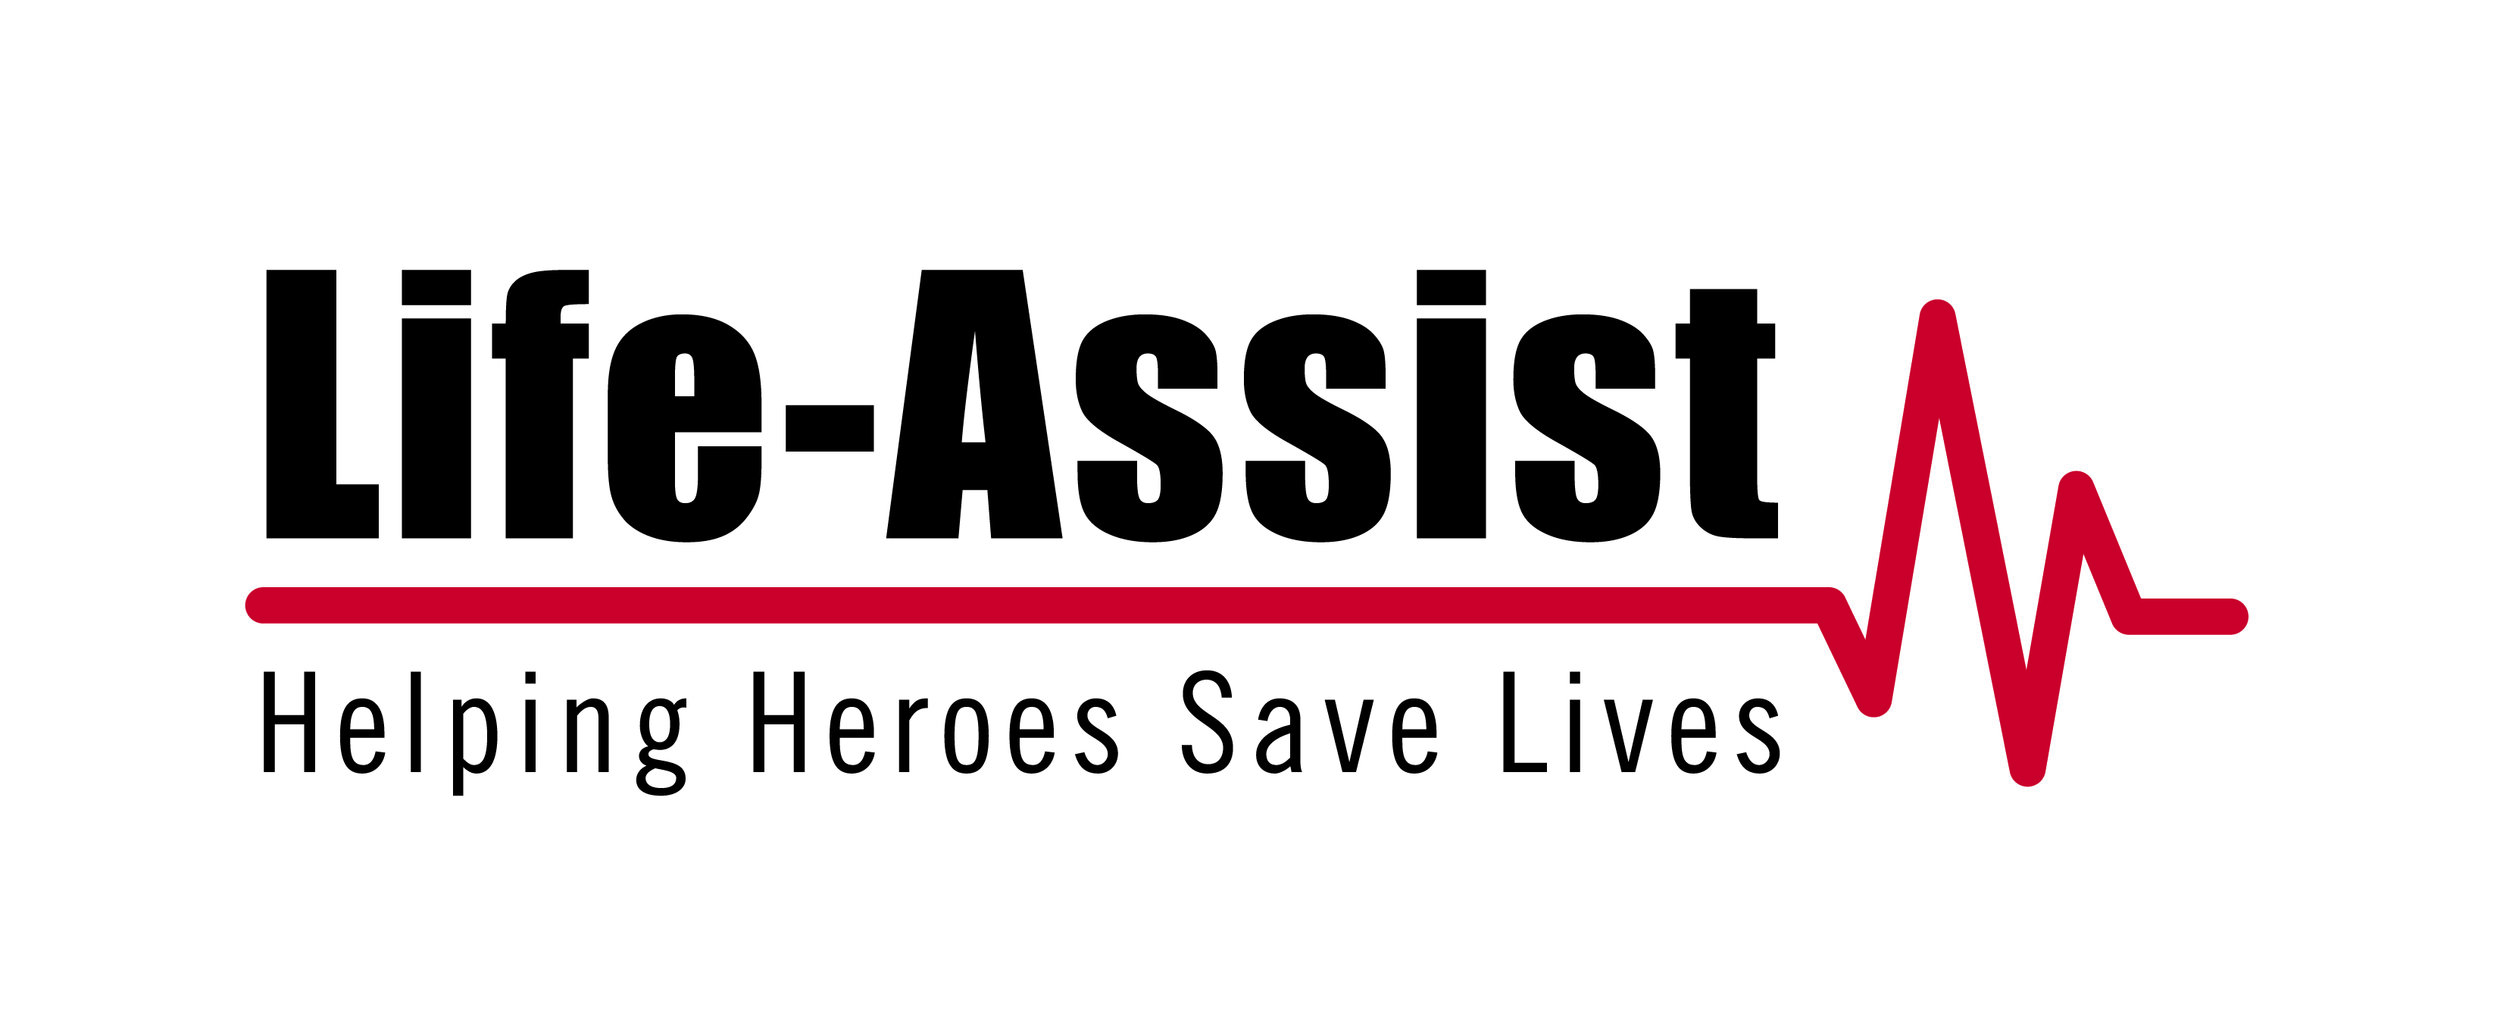 Copy of Life Assist - Floor Sponsor